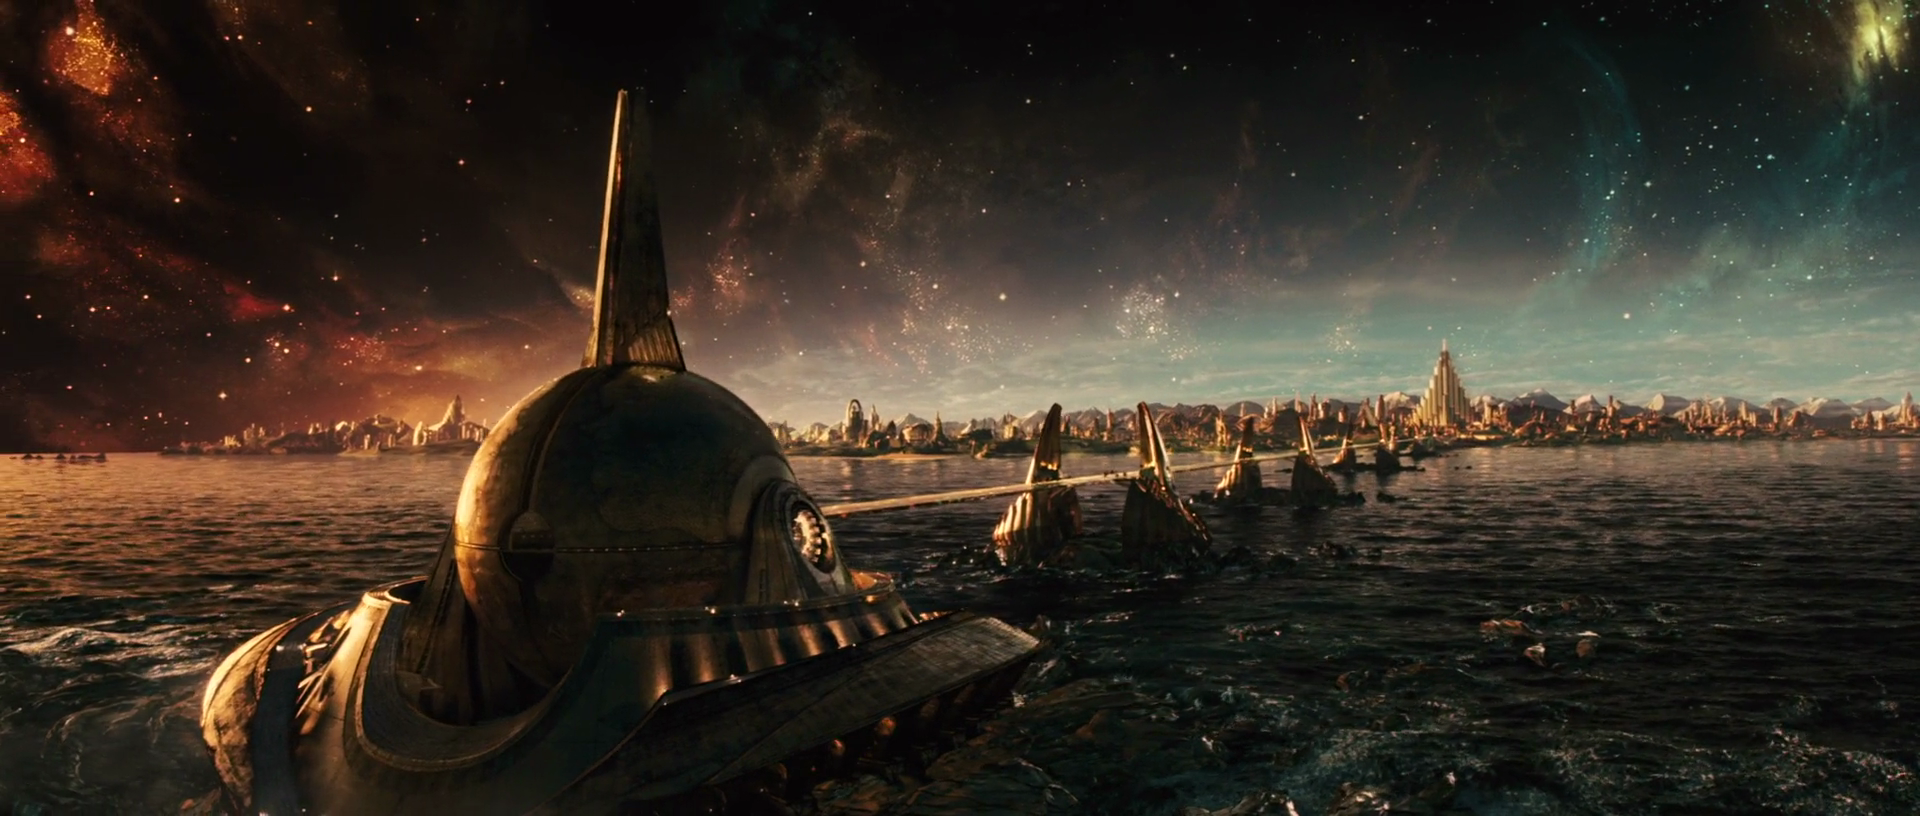 http://vignette3.wikia.nocookie.net/disney/images/5/5f/Asgard-1-.png/revision/latest?cb=20131207033328